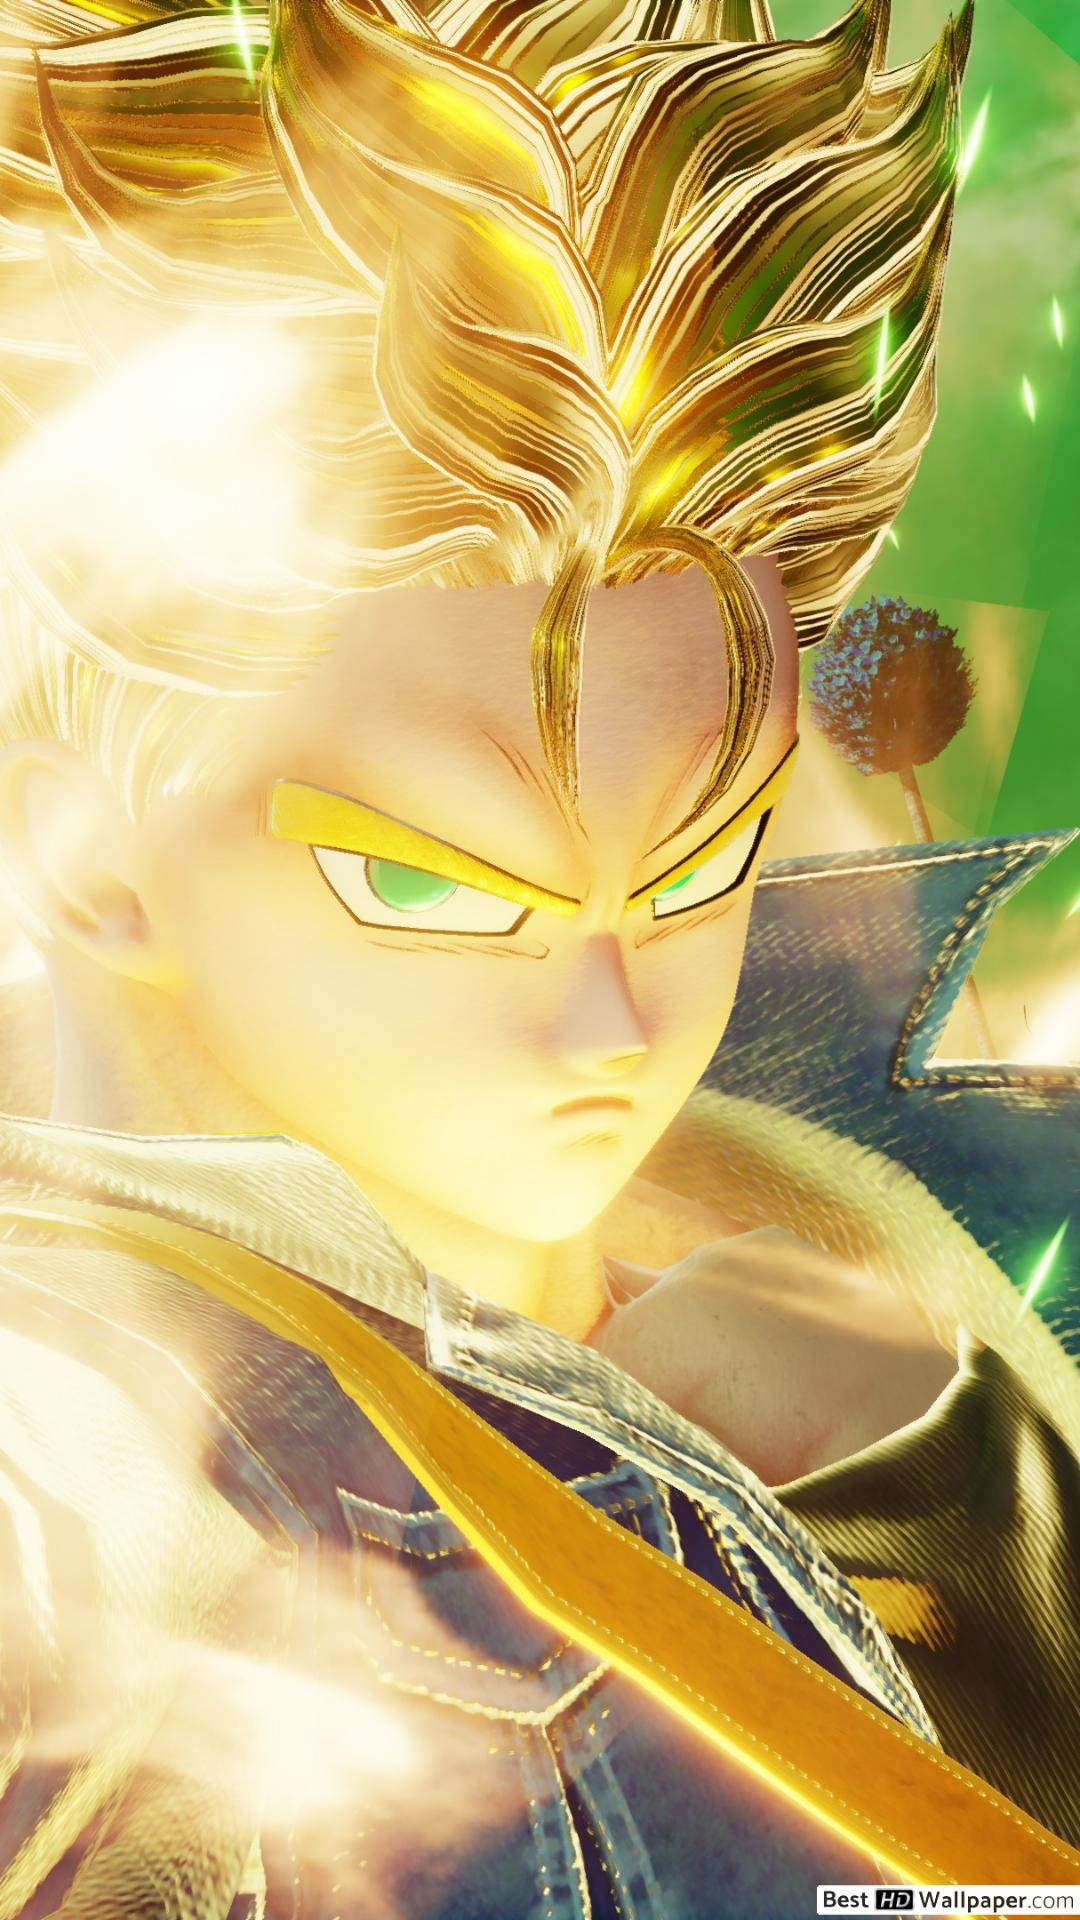 Apple Iphone 7 Plus Jump Force Trunks 246347 Hd Wallpaper Backgrounds Download